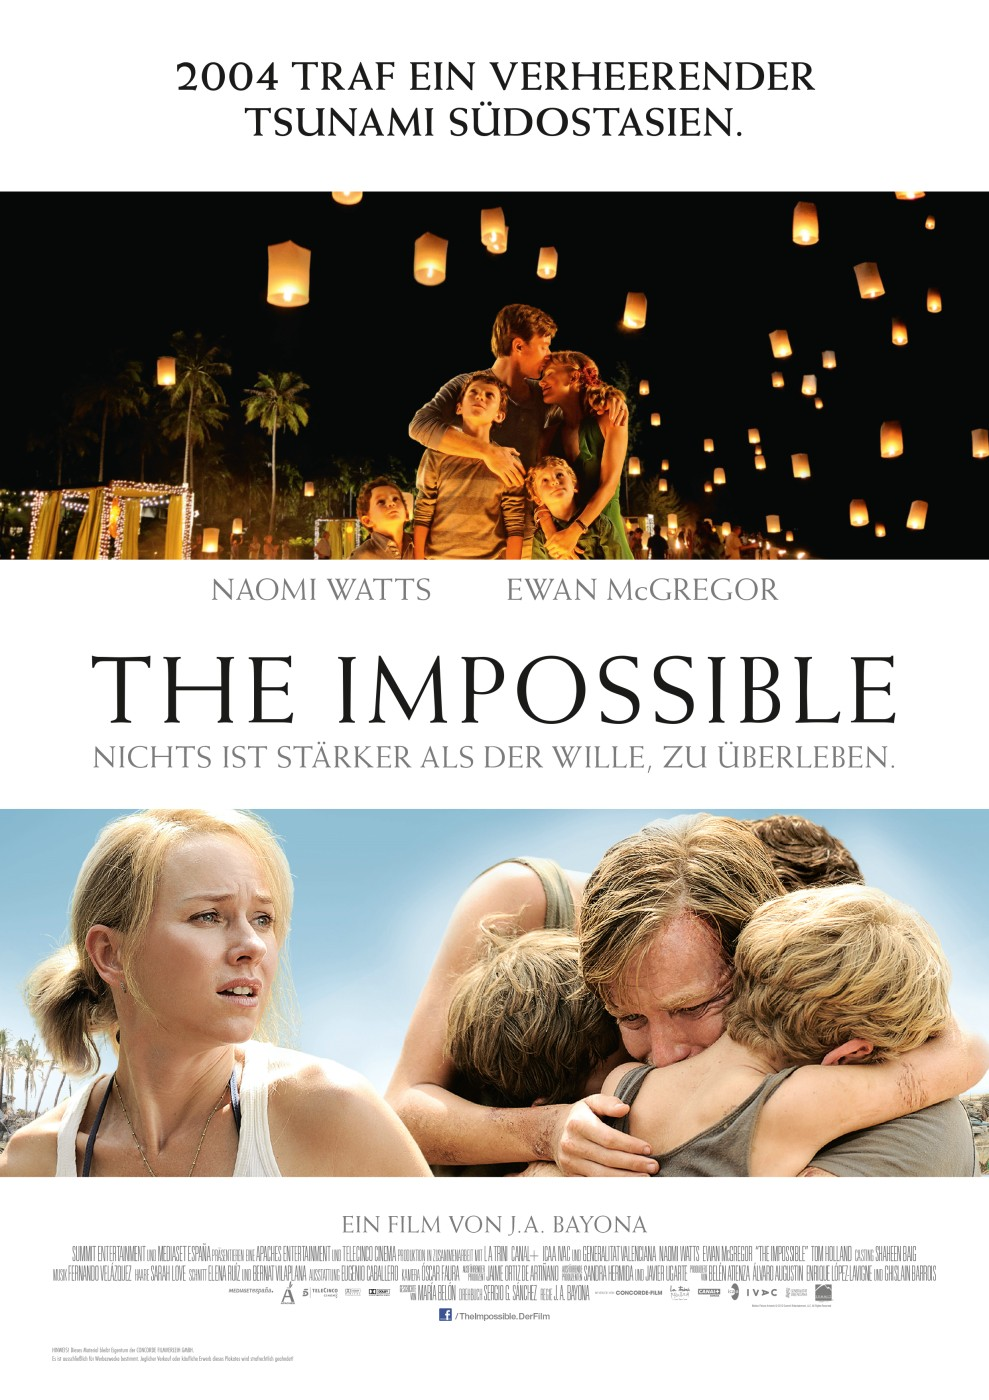 http://collider.com/wp-content/uploads/impossible-poster-international.jpg